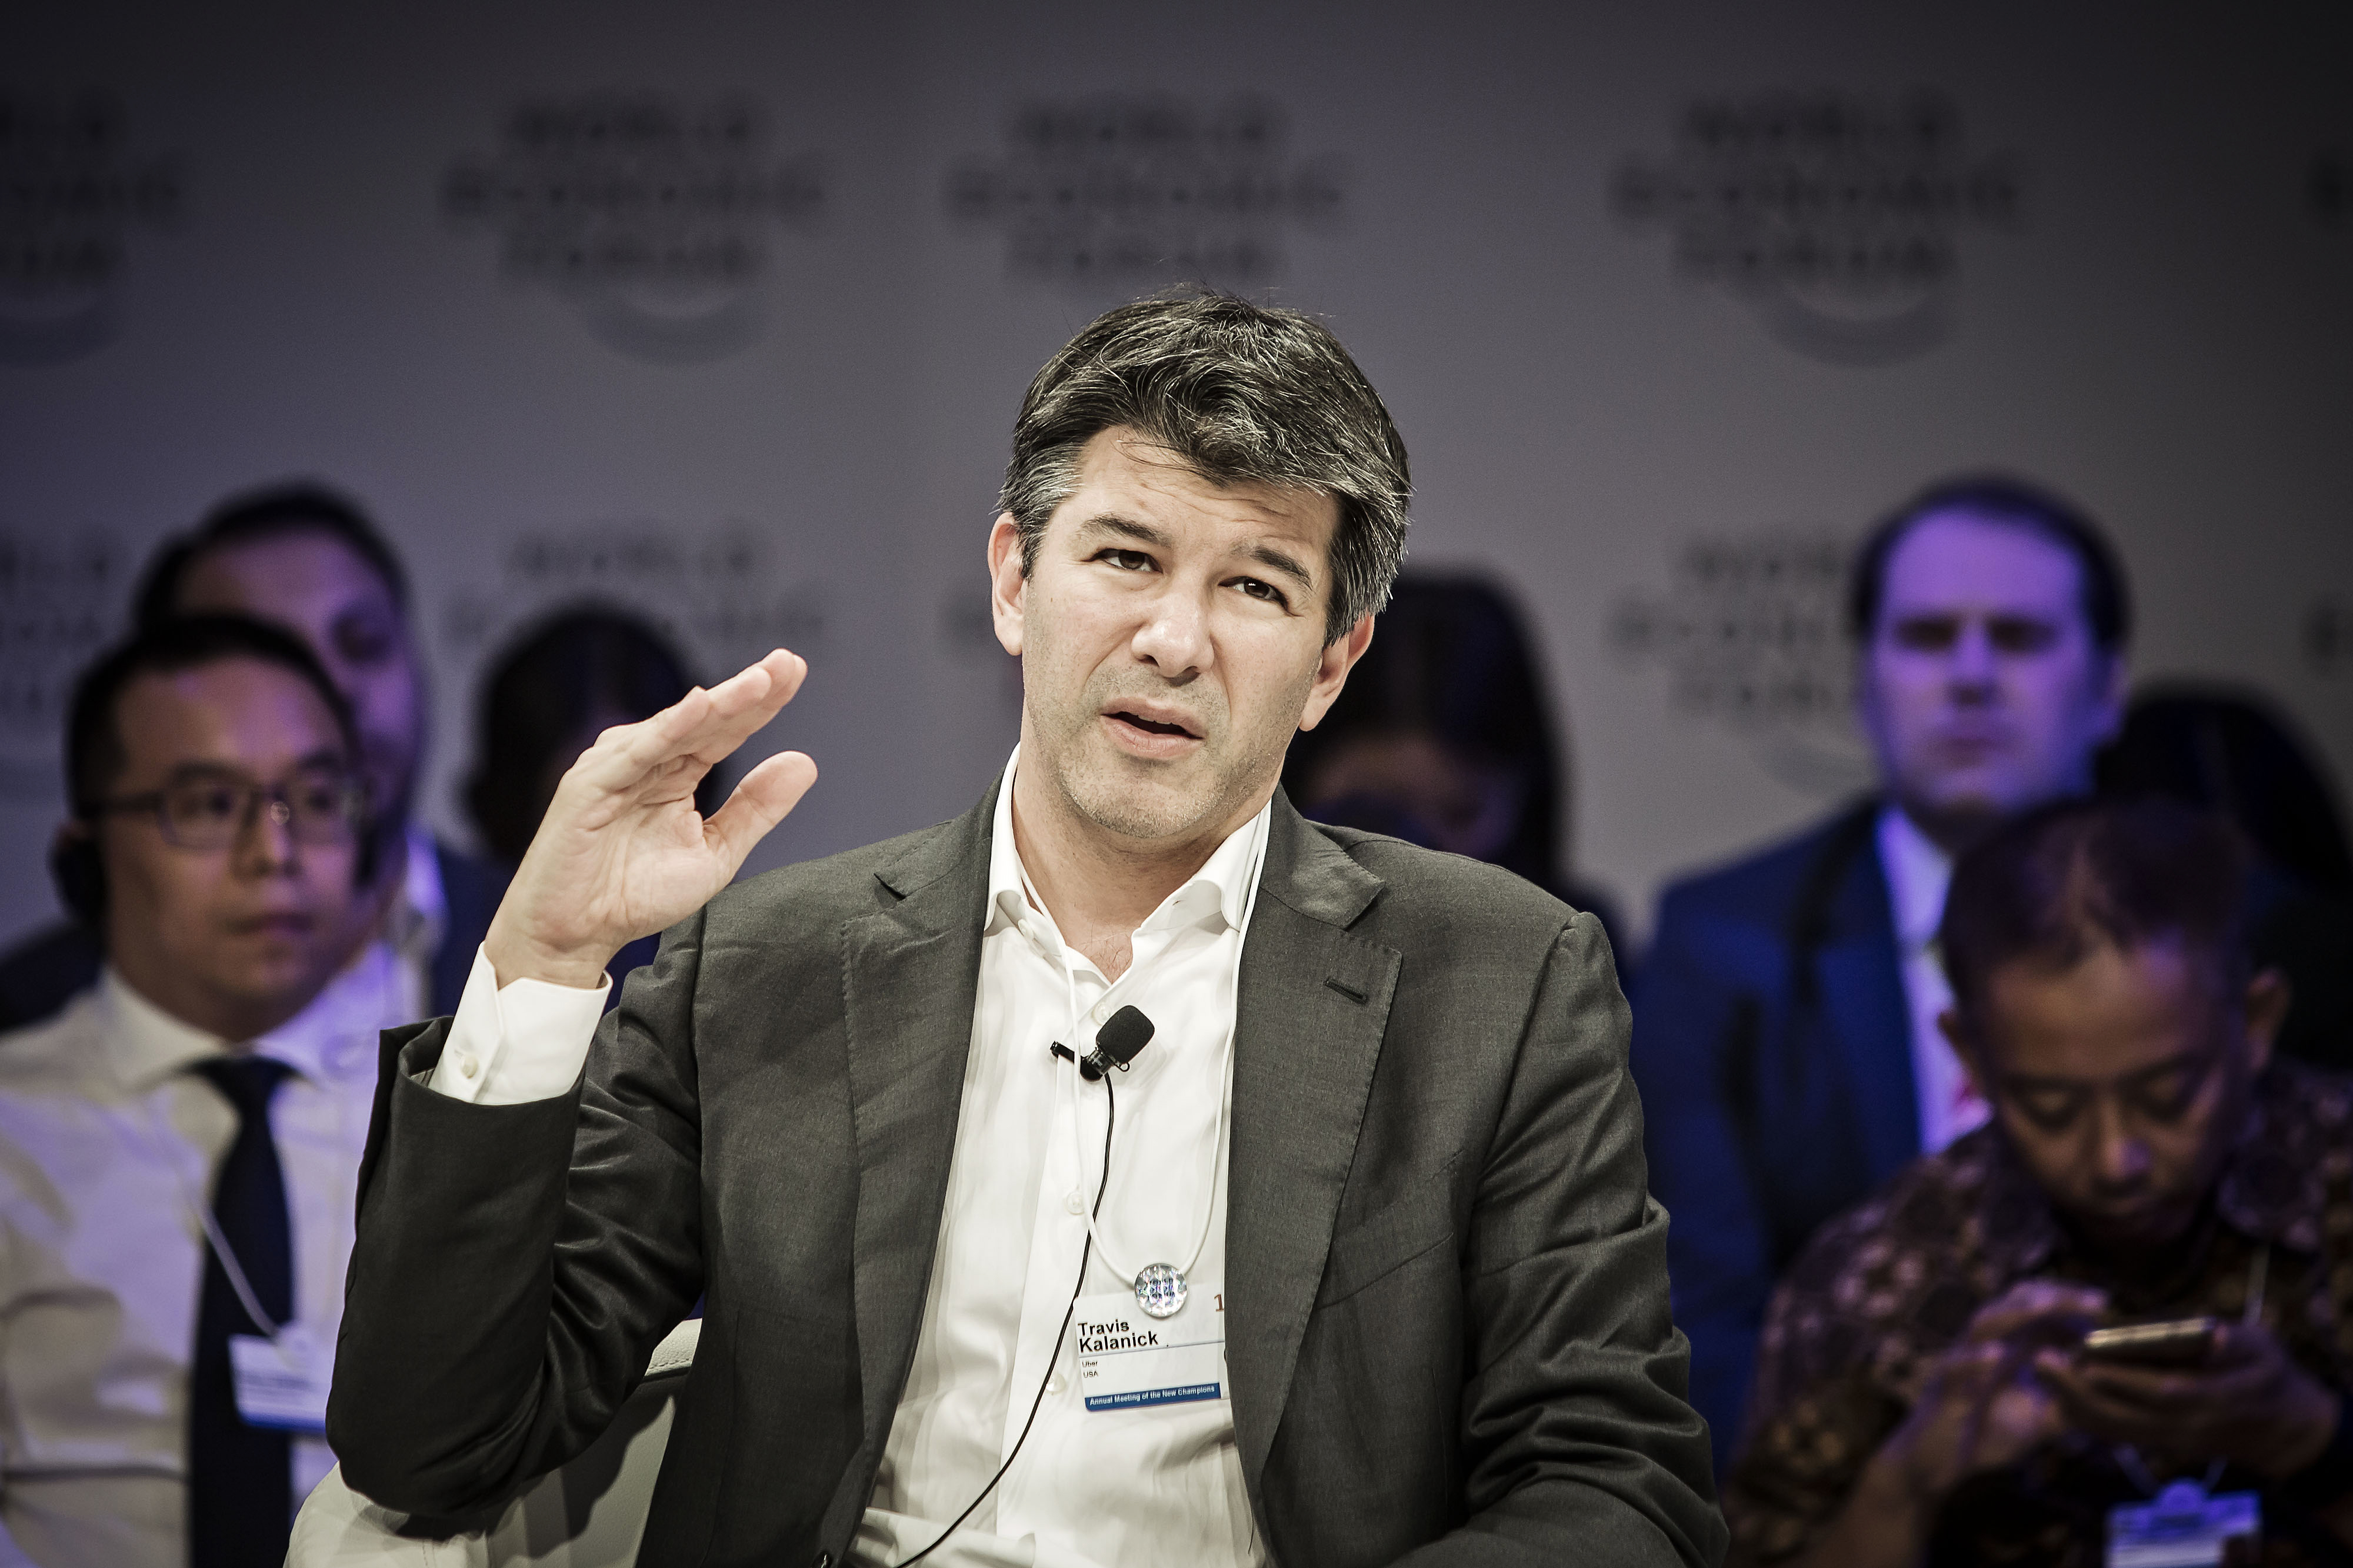 Key Speakers at WEF Annual Meeting of the New Champions